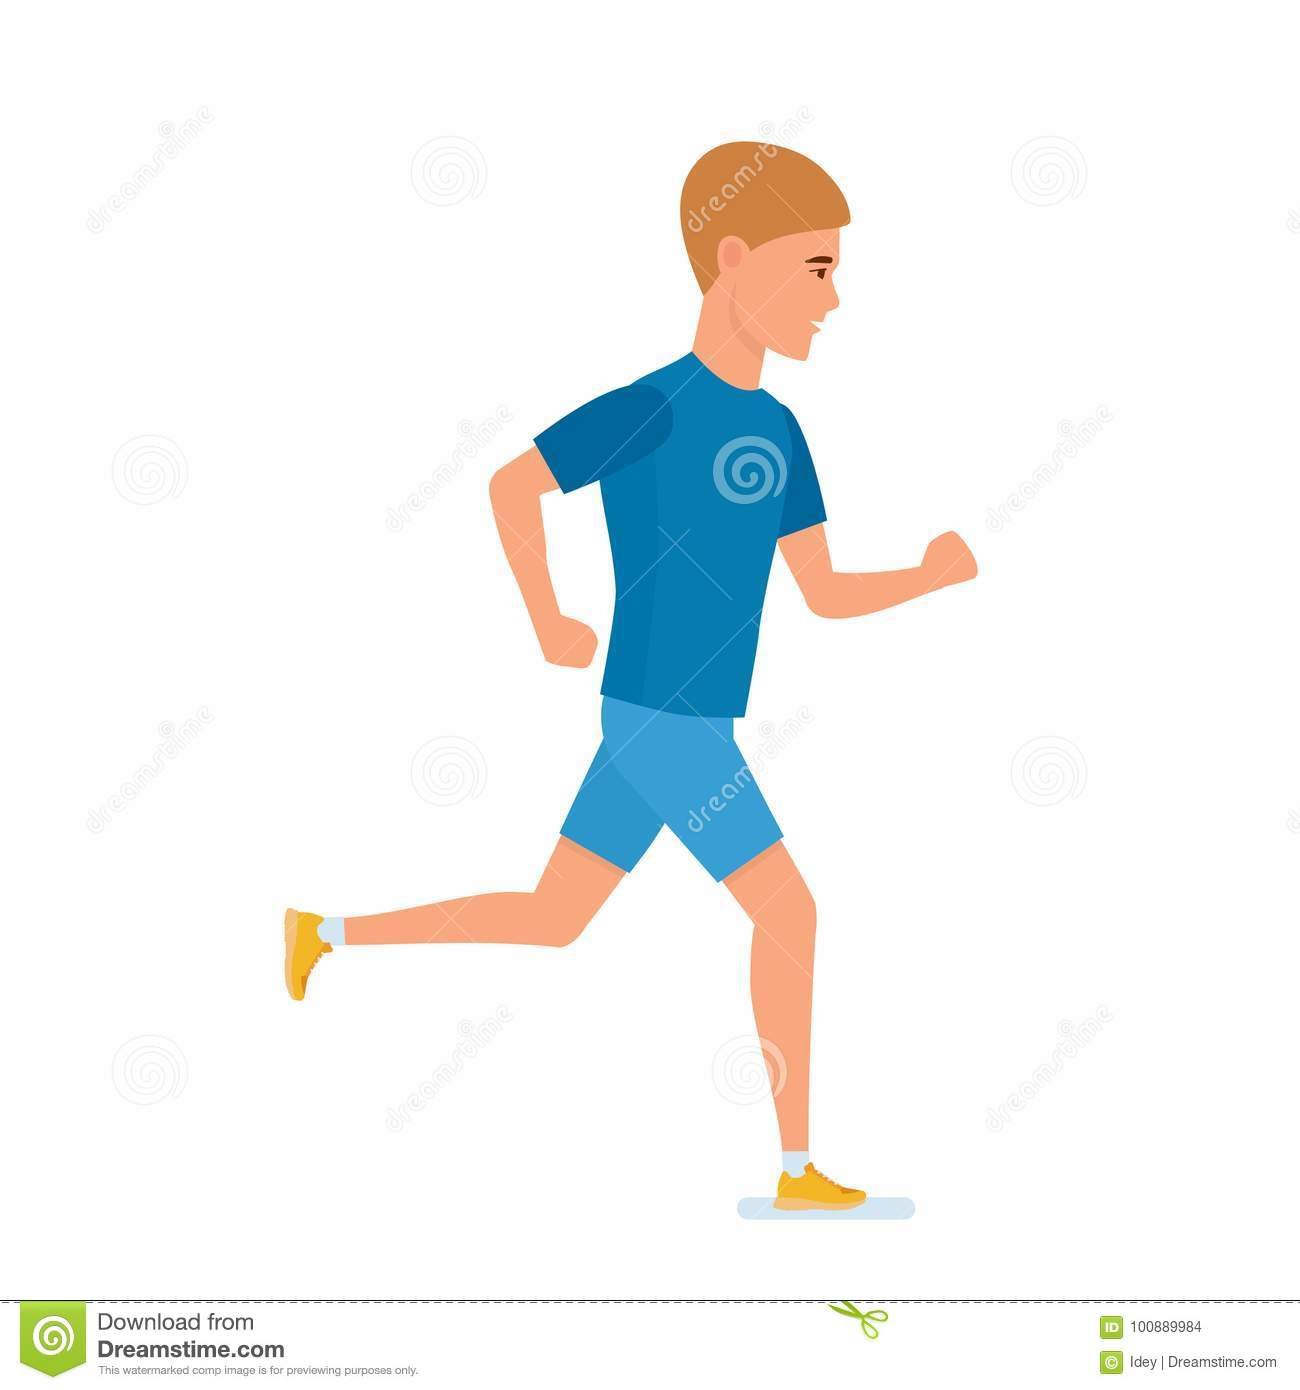 Young athlete engaged in athletics, jogging. Sports training, side view.